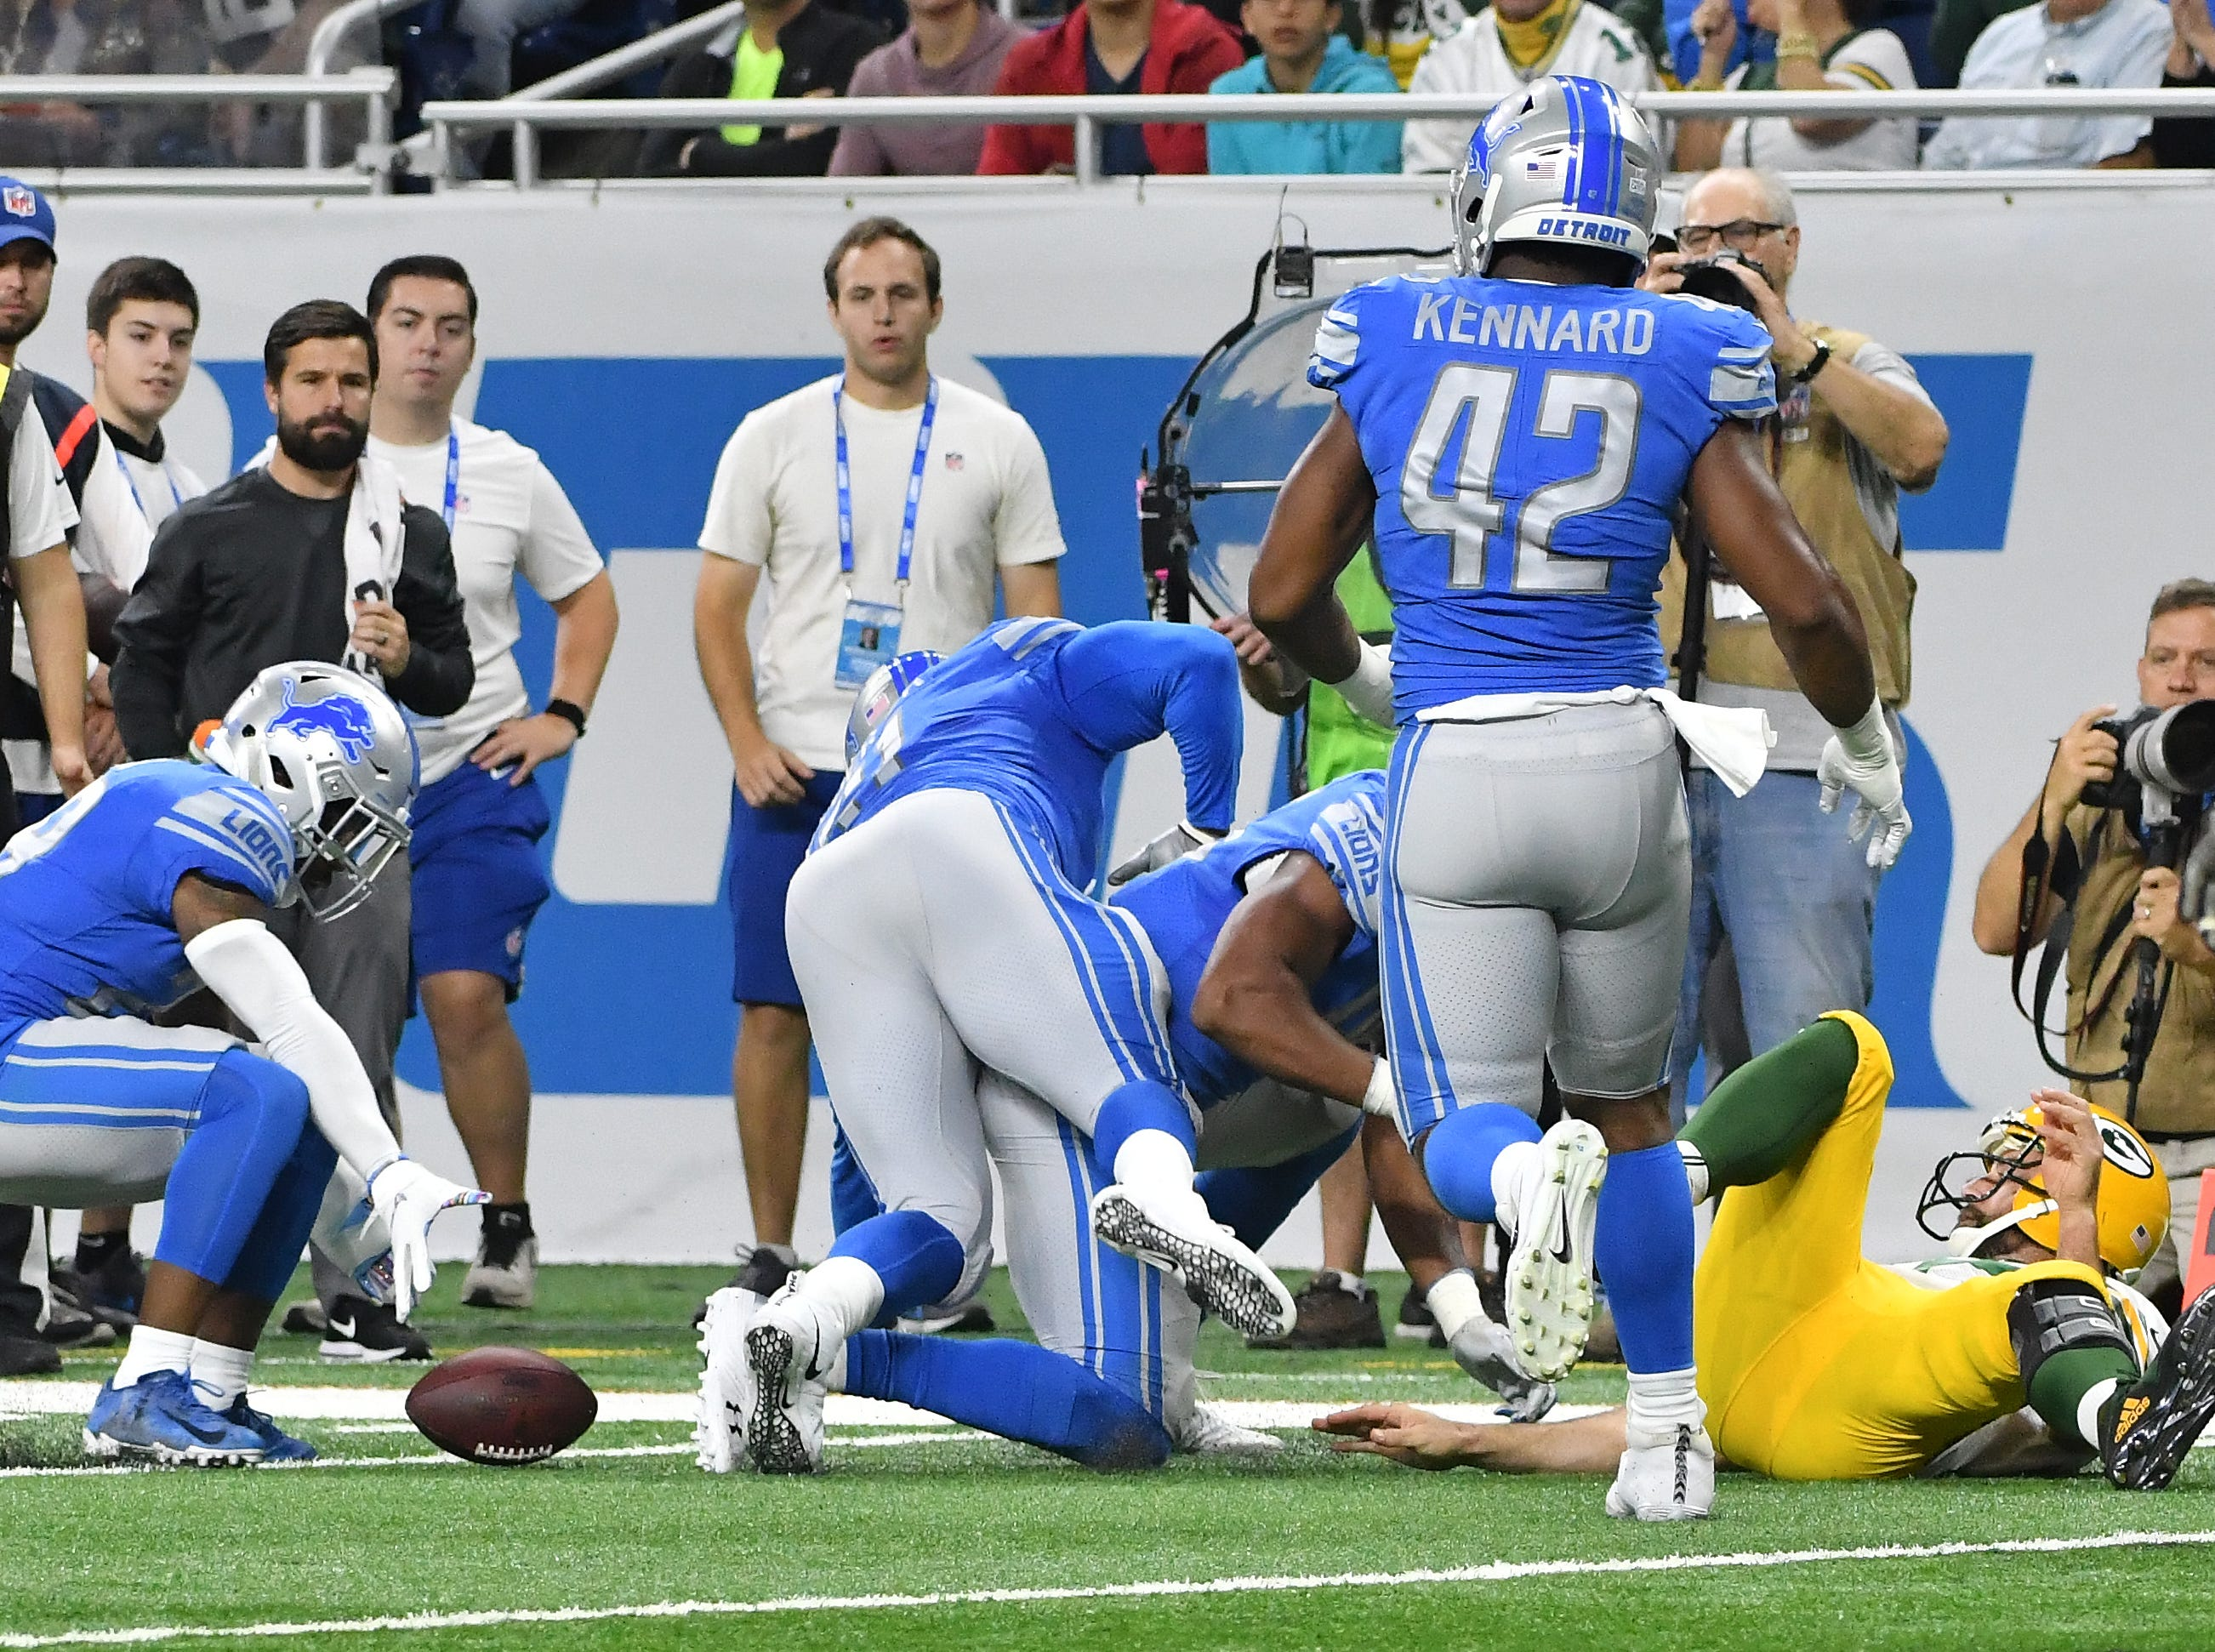 Packers' Aaron Rodgers fumbles the ball with a swat of the ball by Lions' Romeo Okwara, with Detroit recovering,  in the first quarter.